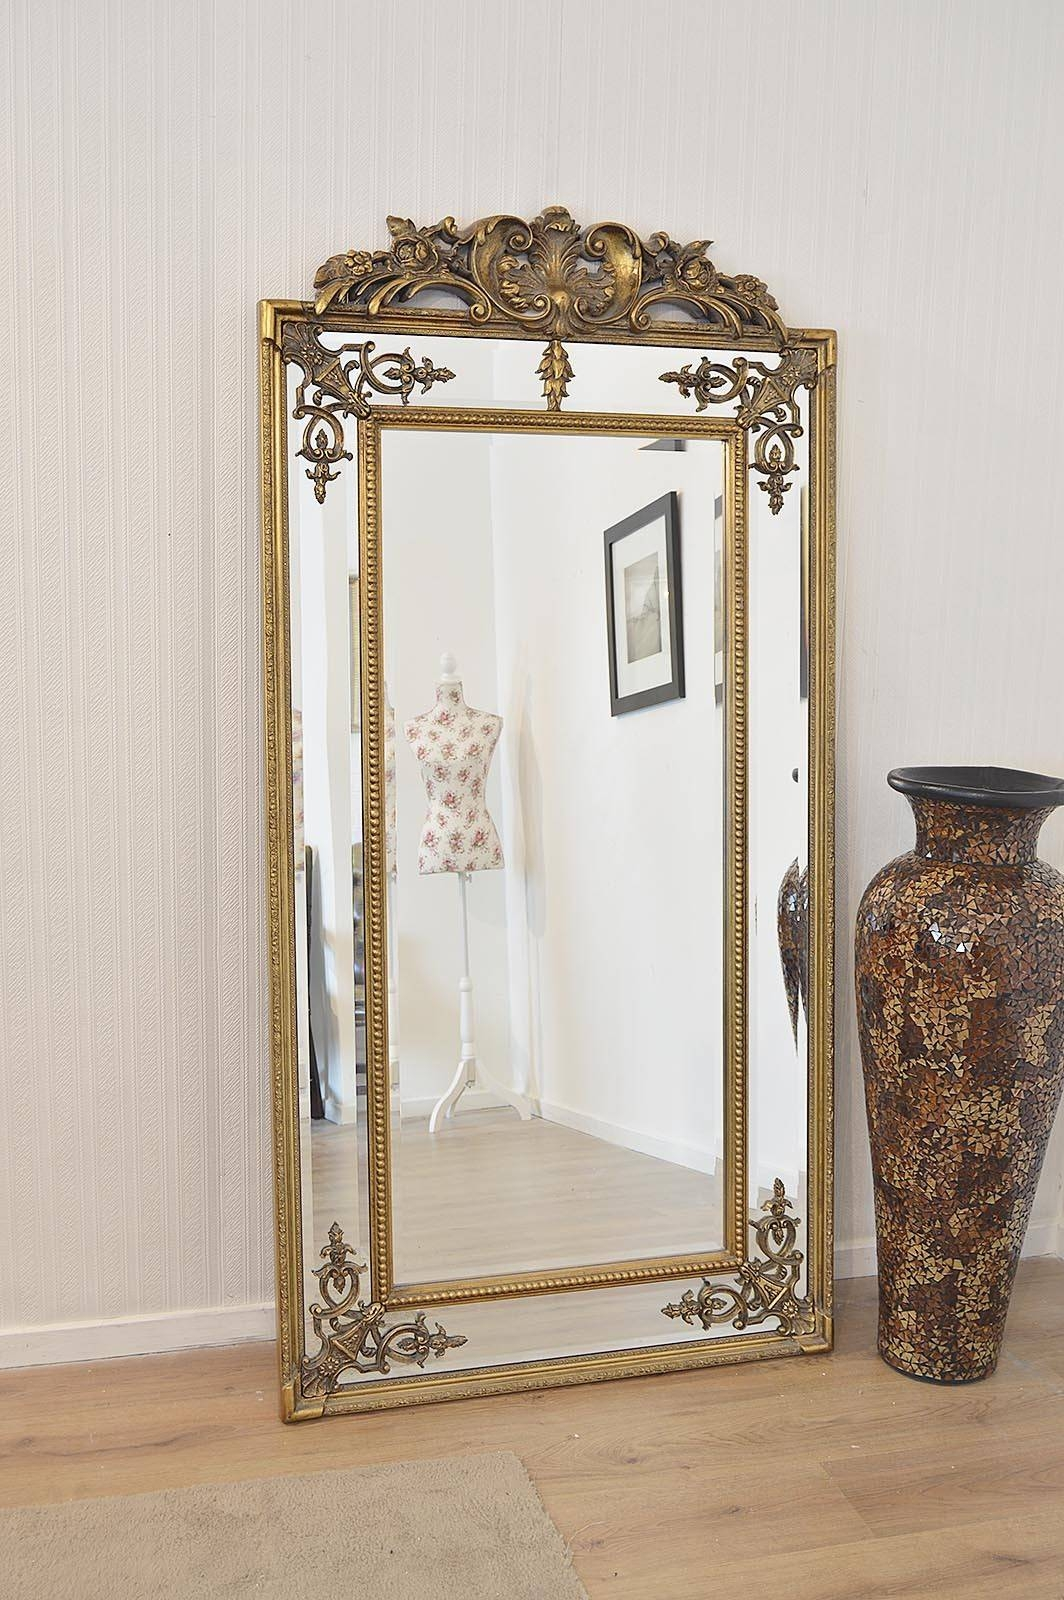 Large Standing Mirrors, Ornate Gold Picture Frames Large Gold within Gold Standing Mirrors (Image 13 of 15)